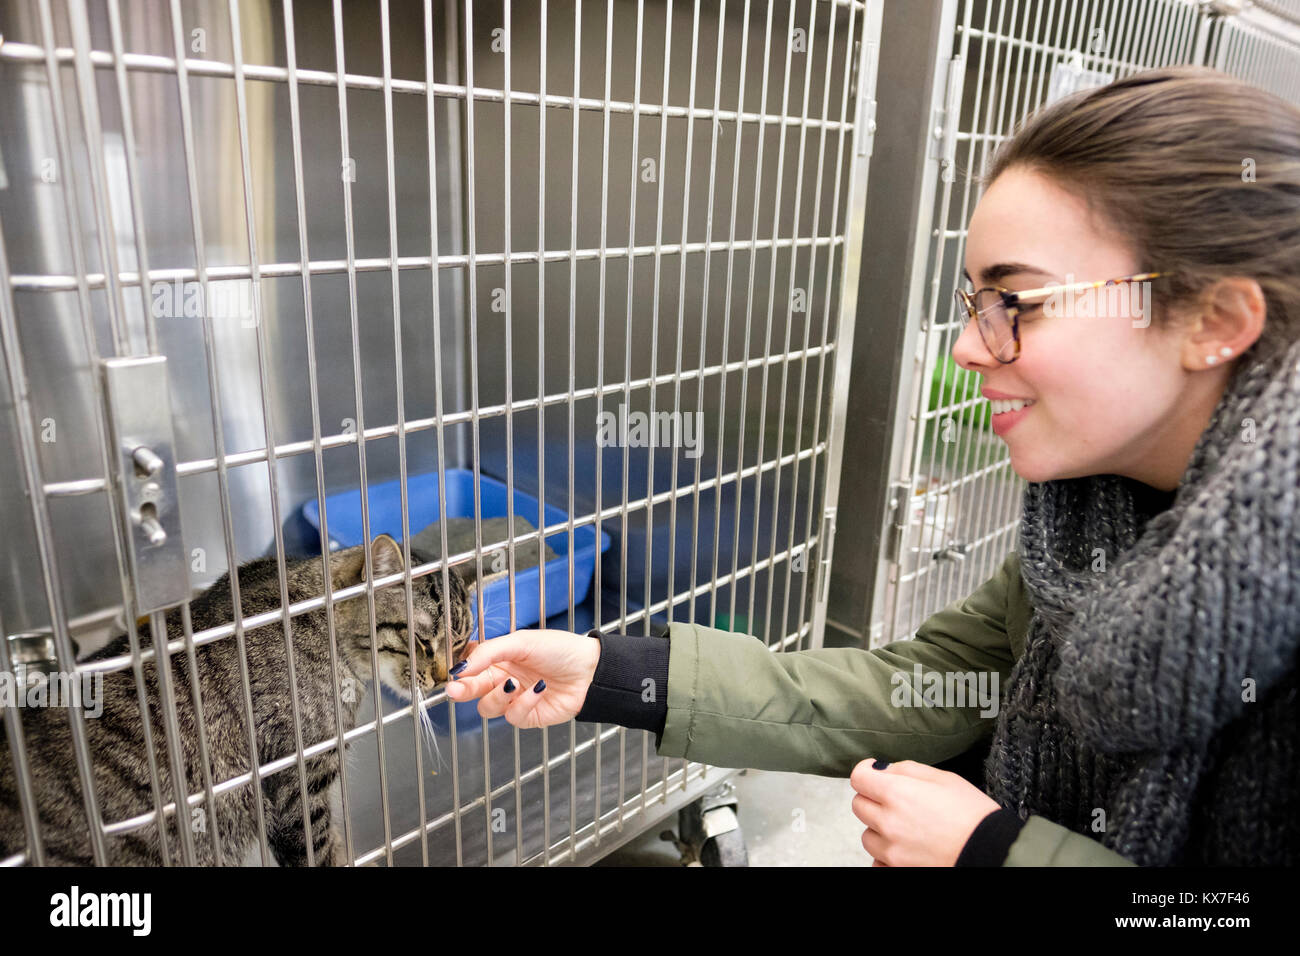 Teenager girl petting a caged domestic cat being offered for adoption at a pet store in London, Ontario, Canada. - Stock Image